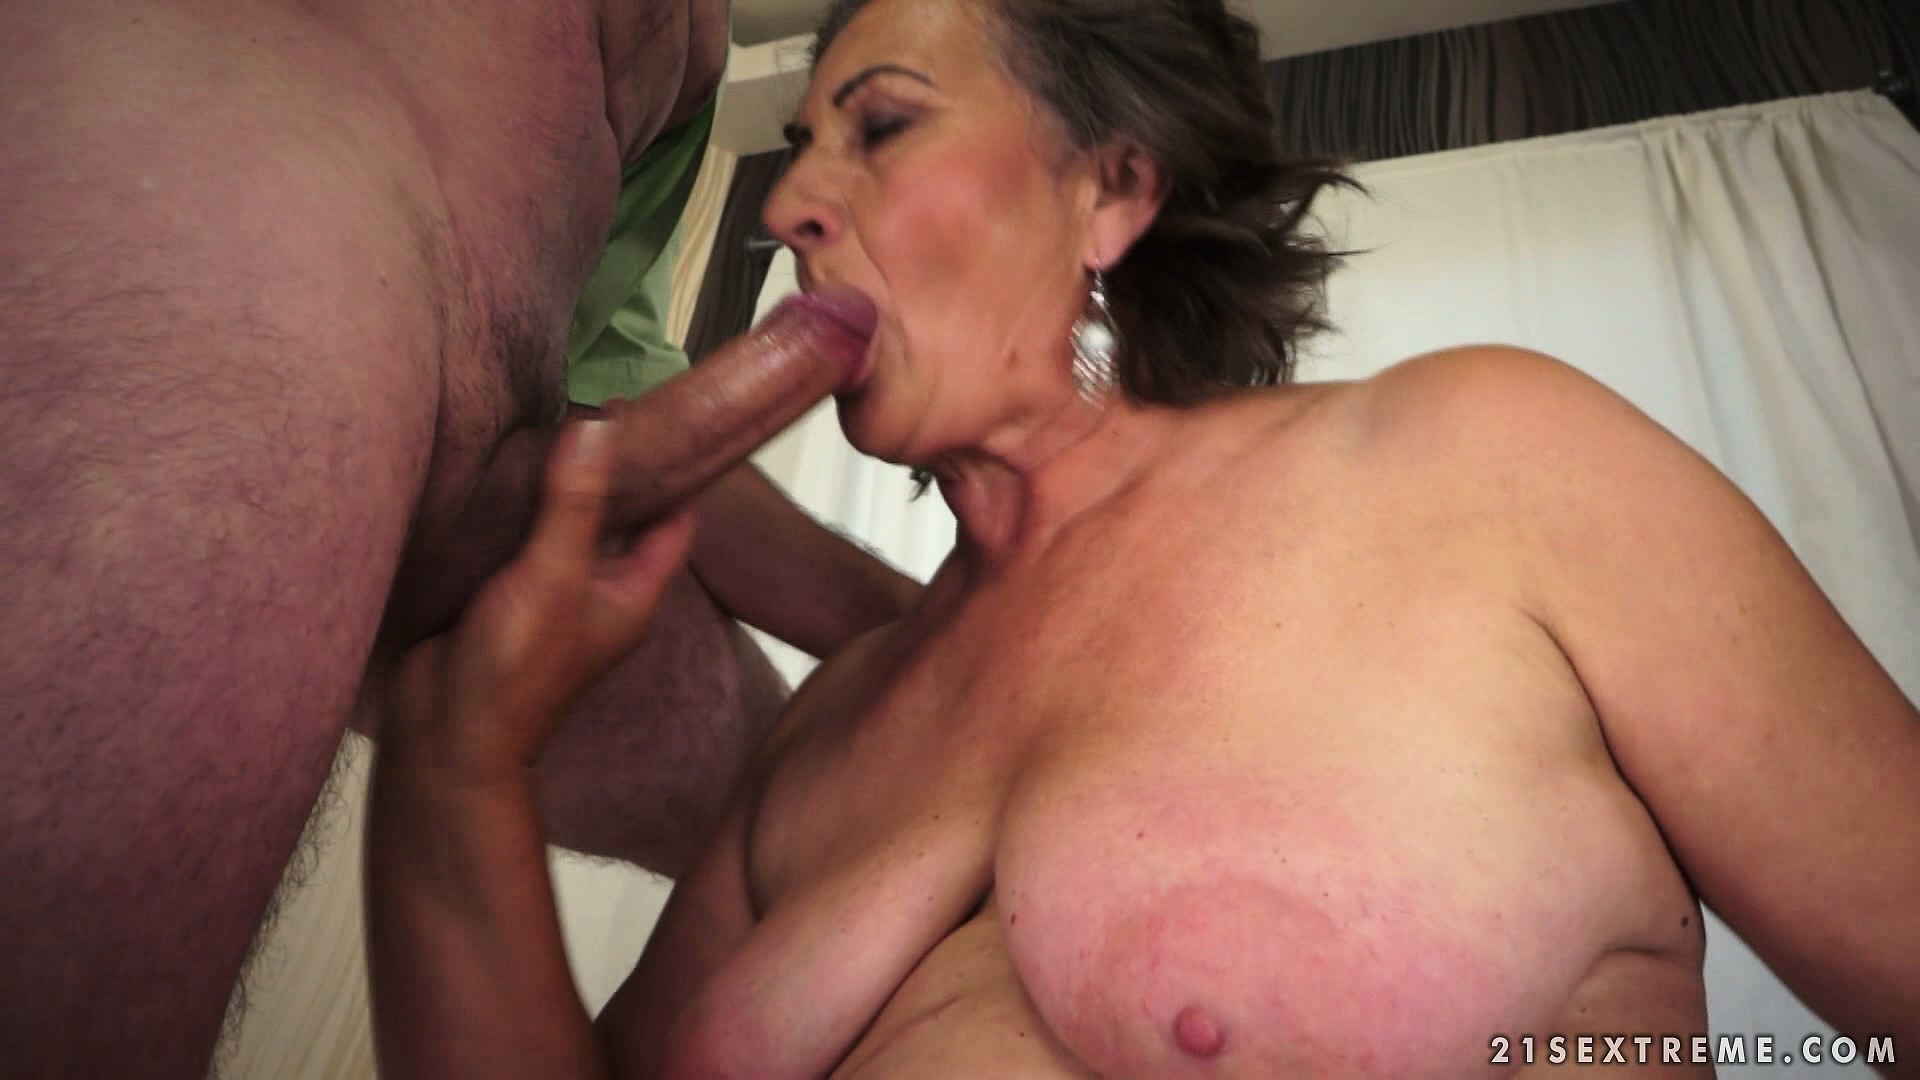 Porn Tube of Hairy Old Granny Is Getting Her Twat Licked, Blows And Gets Pumped